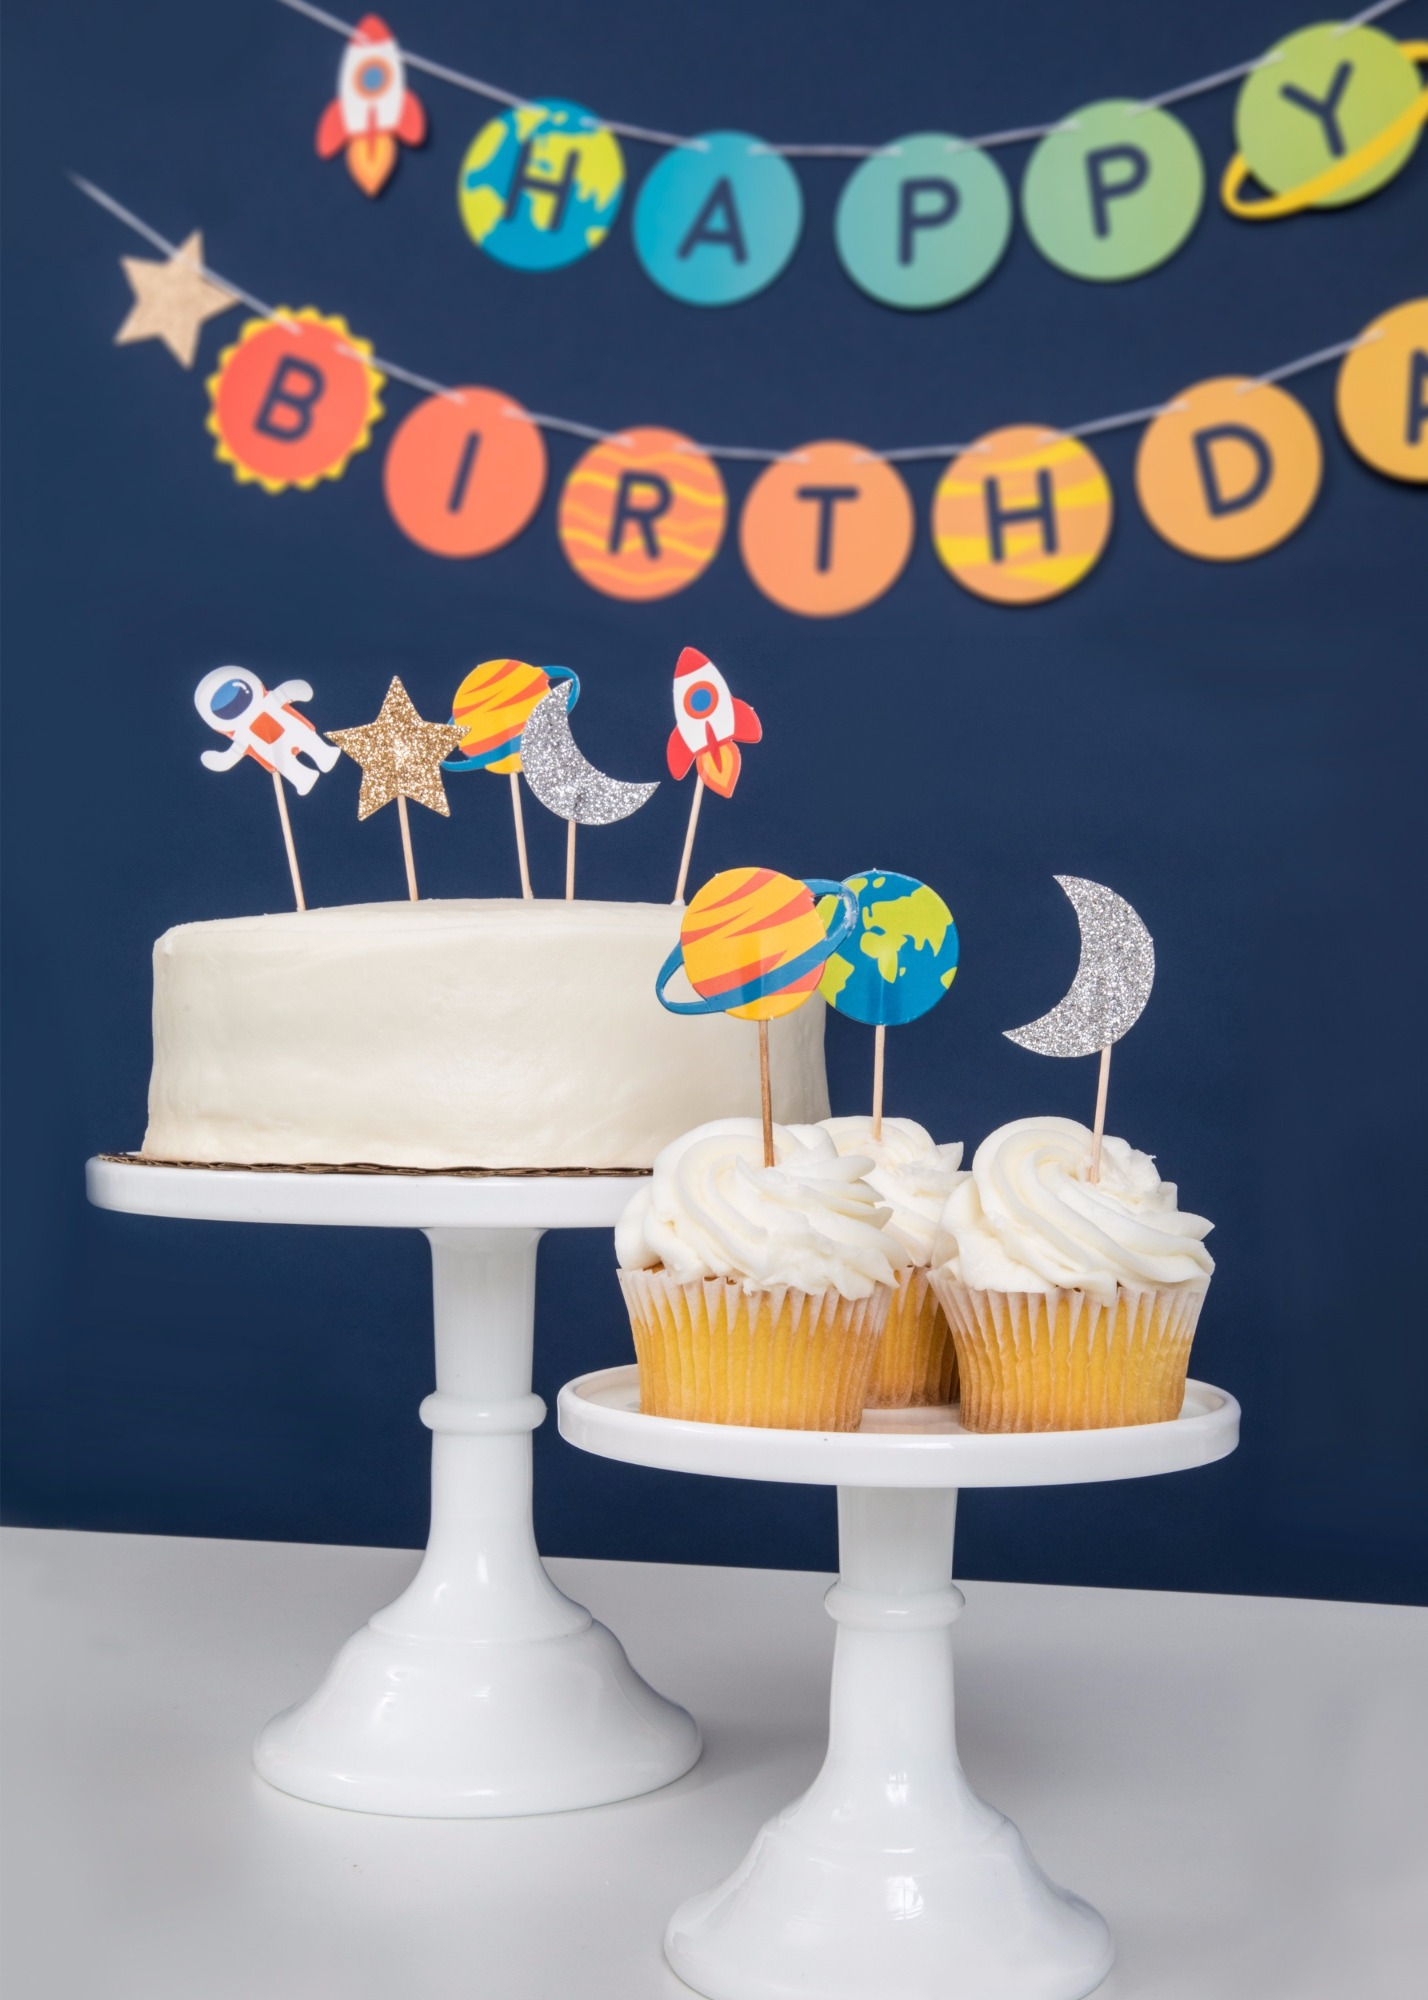 Birthday Cake and cupcakes from To The Moon Birthday Party by Merrilulu | Black Twine